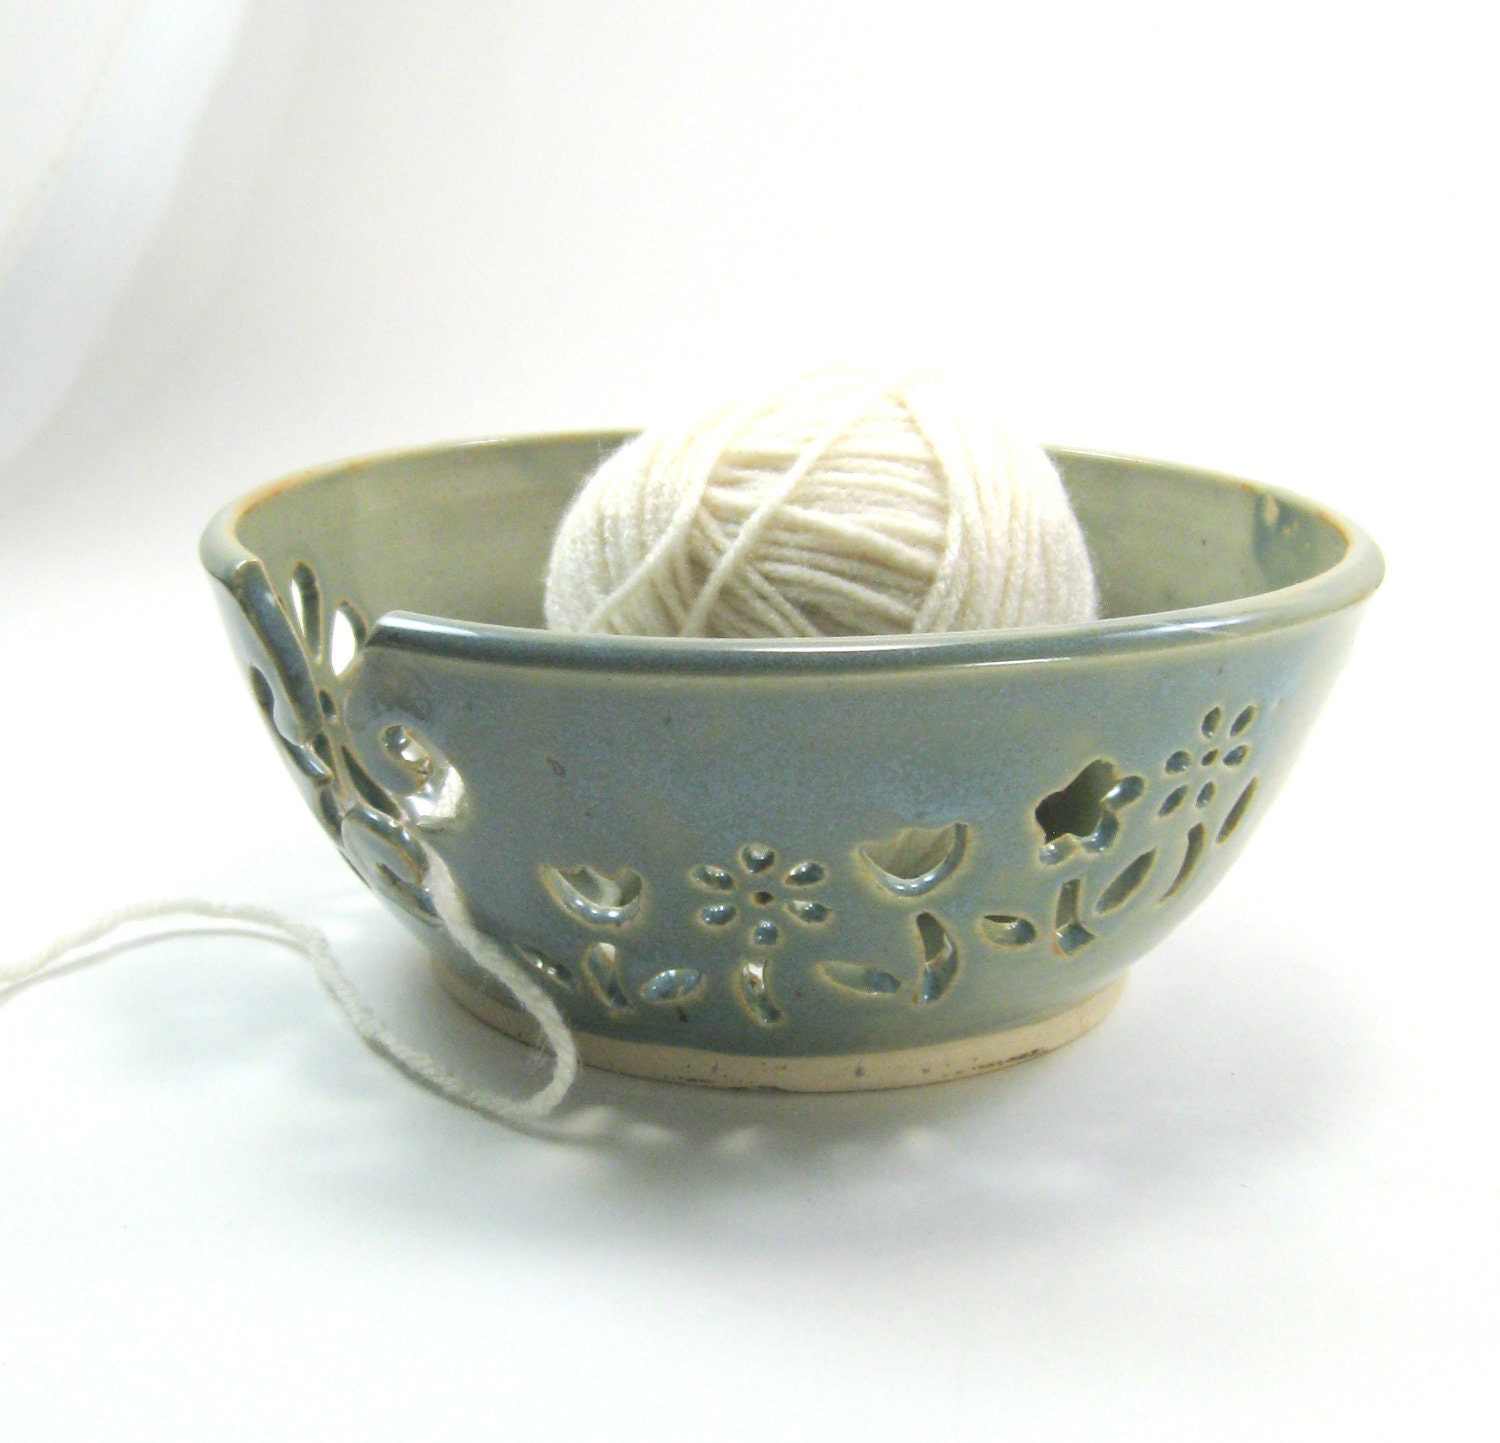 Crochet Yarn Bowl : Ceramic Yarn Bowl Knitting Crochet Bowl Knitting Supplies flowers